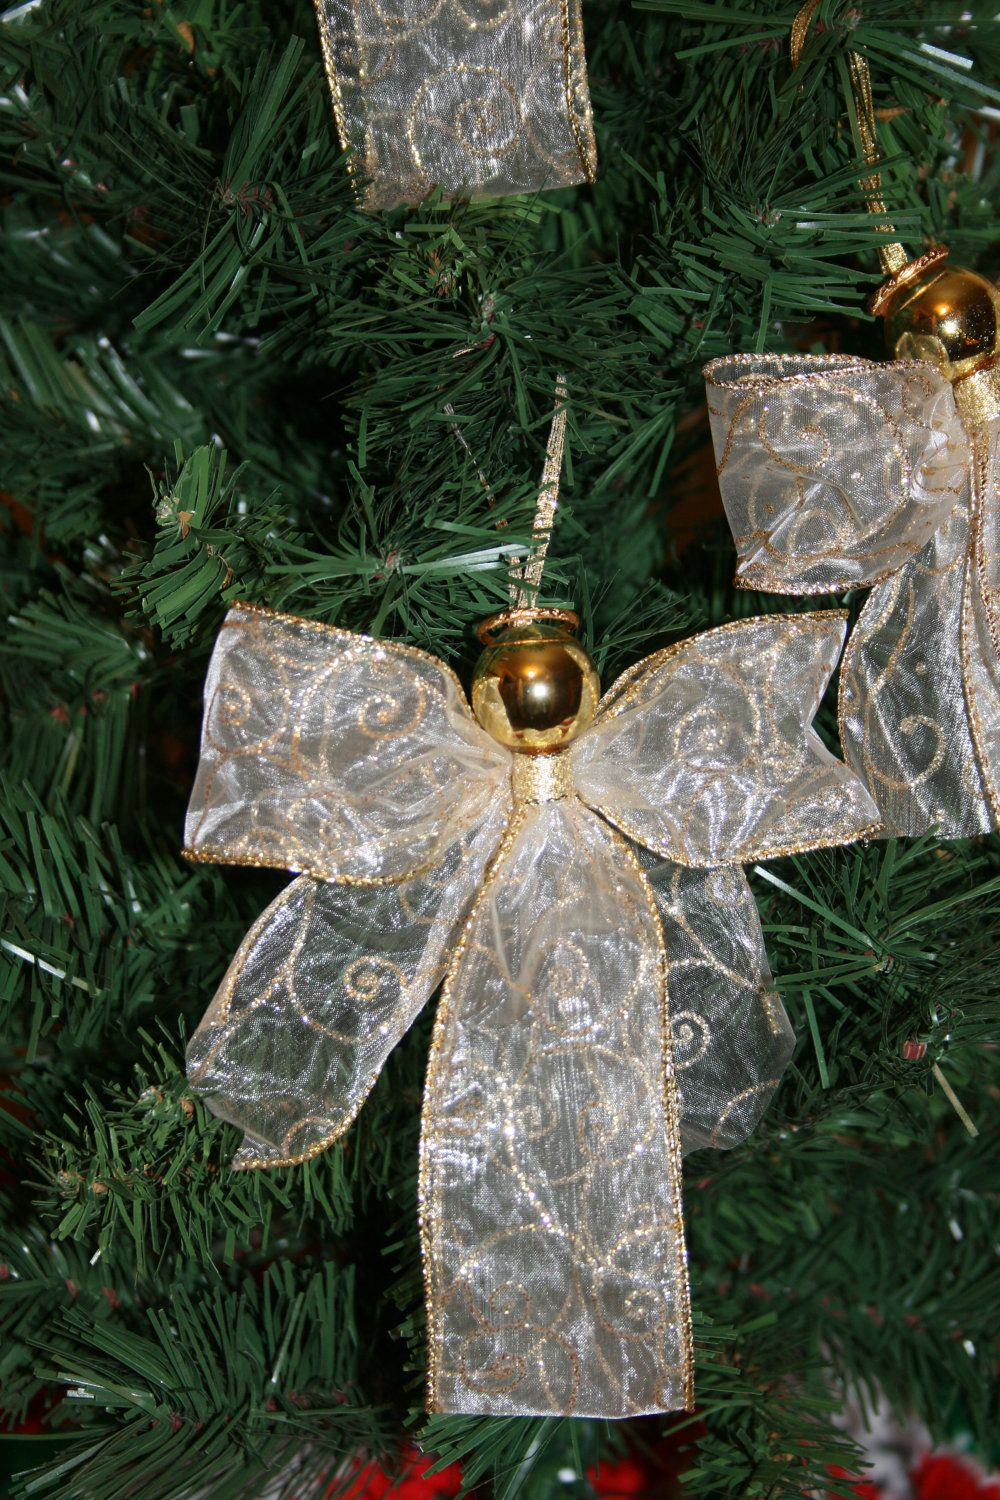 Handmade christmas ornaments on etsy - 3 Handmade Christmas Ribbon Angel Ornaments White With Gold Glitter Swirls Ribbon 7 00